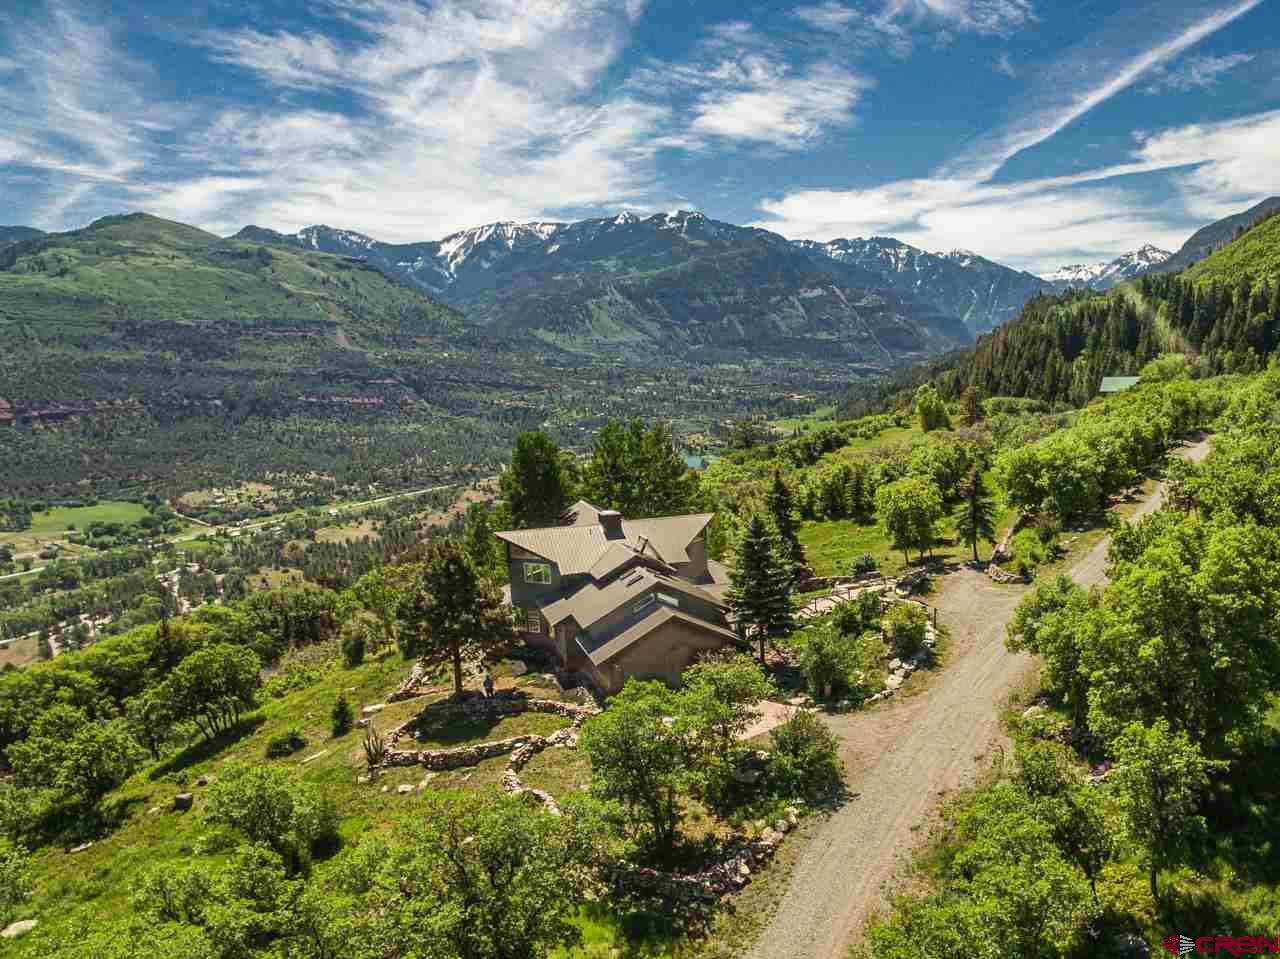 New to the market, never been listed before.  The house  overlooks the full Ouray Valley.  Designed to take in all the natural beauty of the area, views of Ouray Valley, Mt. Abrams, north to grand mesa and the red rock cliffs of the eastern side of Ouray Valley, the Uncomprahgre River and More.  The mountain architectural design of the house, allows for natural light and openness through out the home.  The open floor plan works well for gatherings or family, from the great cooks kitchen, large living room and dining room as well as a large pantry and dumb waiter for easy transferring of products from the garage.  Plenty of room for guest in 3 large bedrooms and 2.5 baths.  A fabulous library/office/den, plus a media-room/office/den/guestroom.  The exterior deck and patios offer plenty of great outdoor living space, plus enjoy the fabulous views and setting, the landscaping is a wild flower haven with flowers blooming all summer.  The home construction is very energy efficient, plus the solar that covers all the electrical costs for the year (puts it pack in the grid then get credits back for power produced ), there is also hot water solar storage as well.  Irrigation rights to irrigate around the house and small pond.  The house and property has to be seen to be really appreciated.  Ask your agent for the full list of construction details and amenities for the house and property, they can be found in the agents additional provisions.